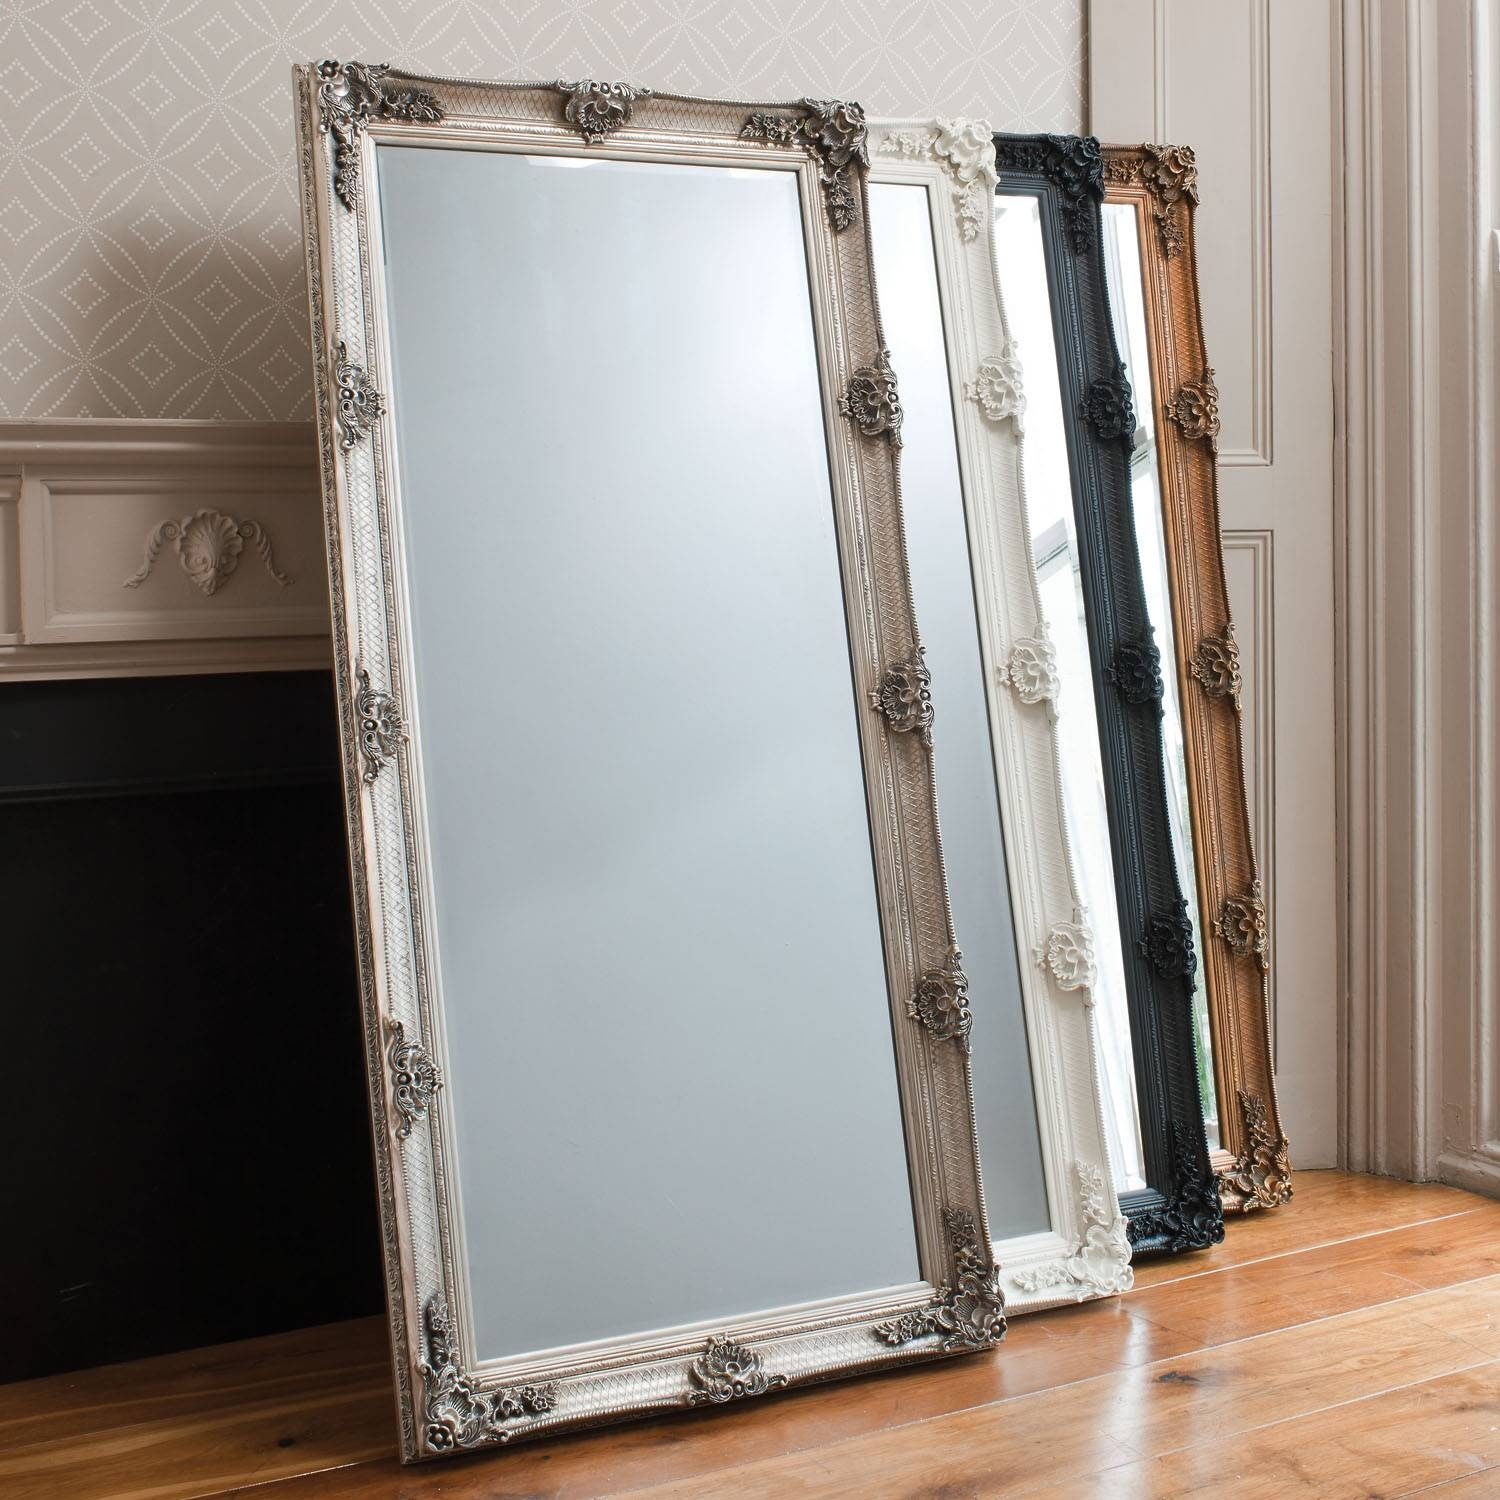 Full Length Mirrors For Sale 95 Breathtaking Decor Plus Full Size within Vintage Full Length Mirrors (Image 18 of 25)